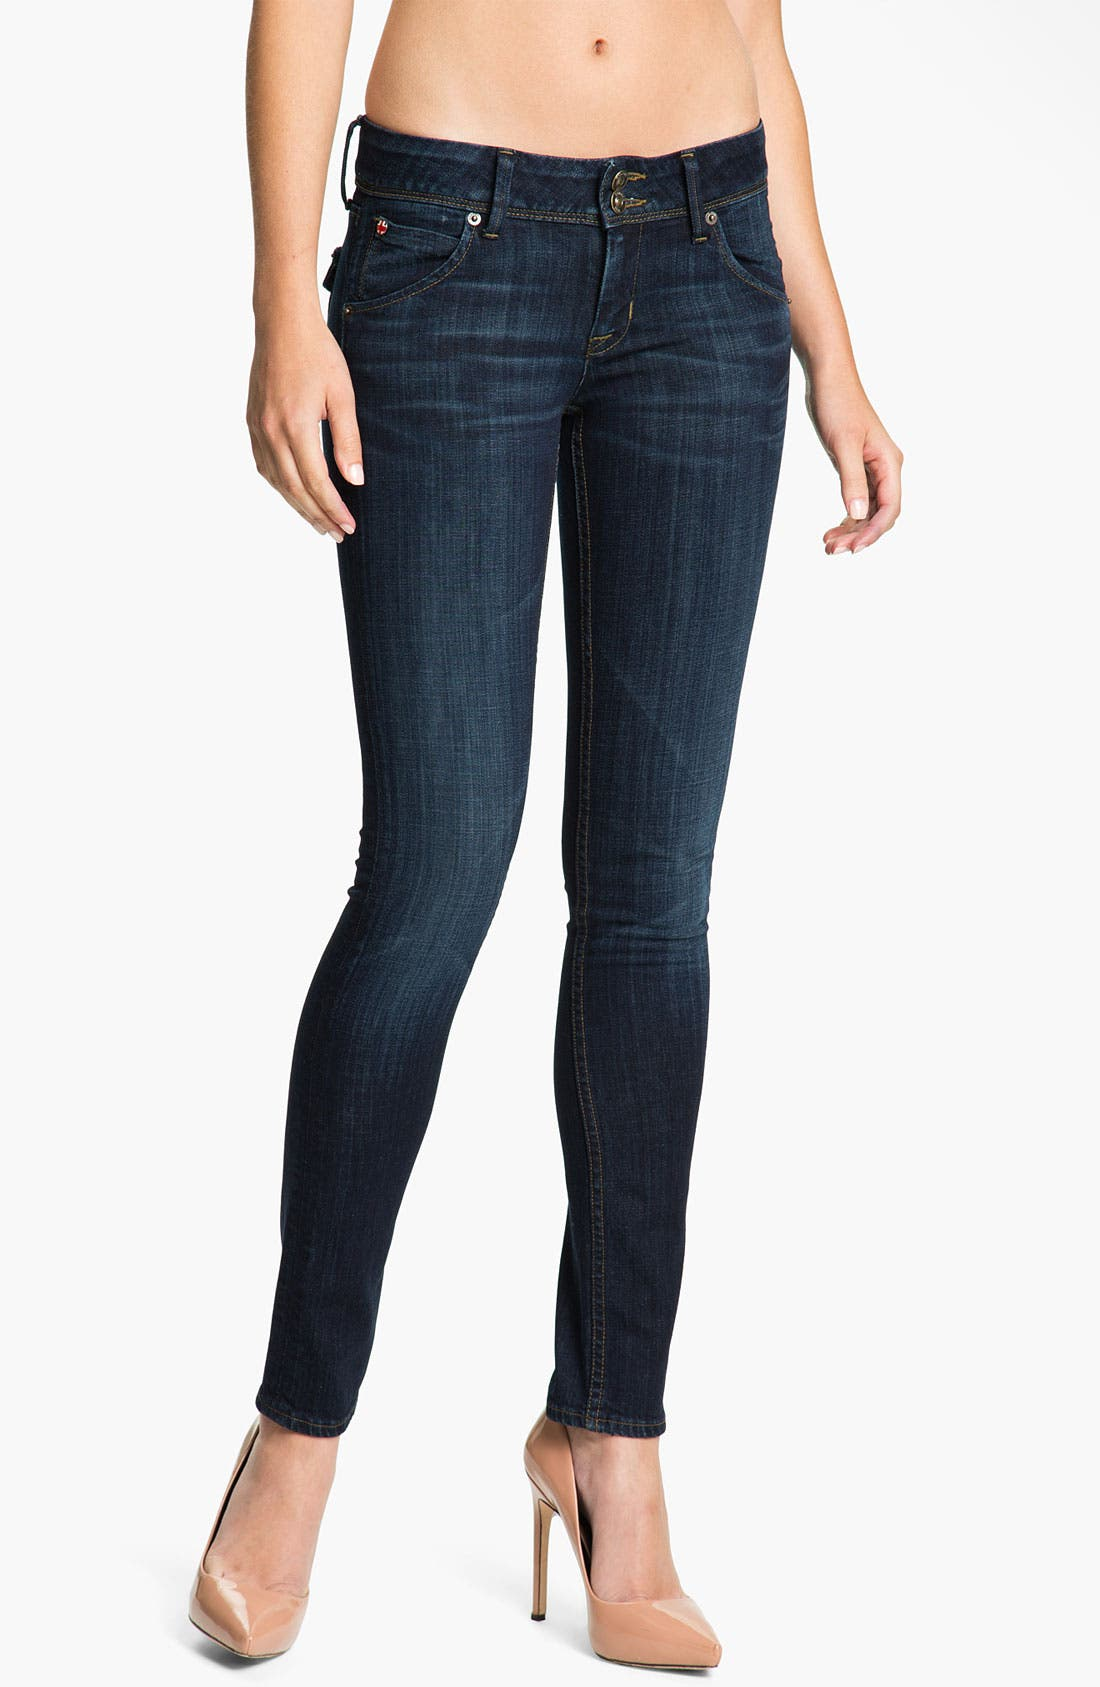 'Collin' Skinny Jeans,                             Main thumbnail 1, color,                             Belfast